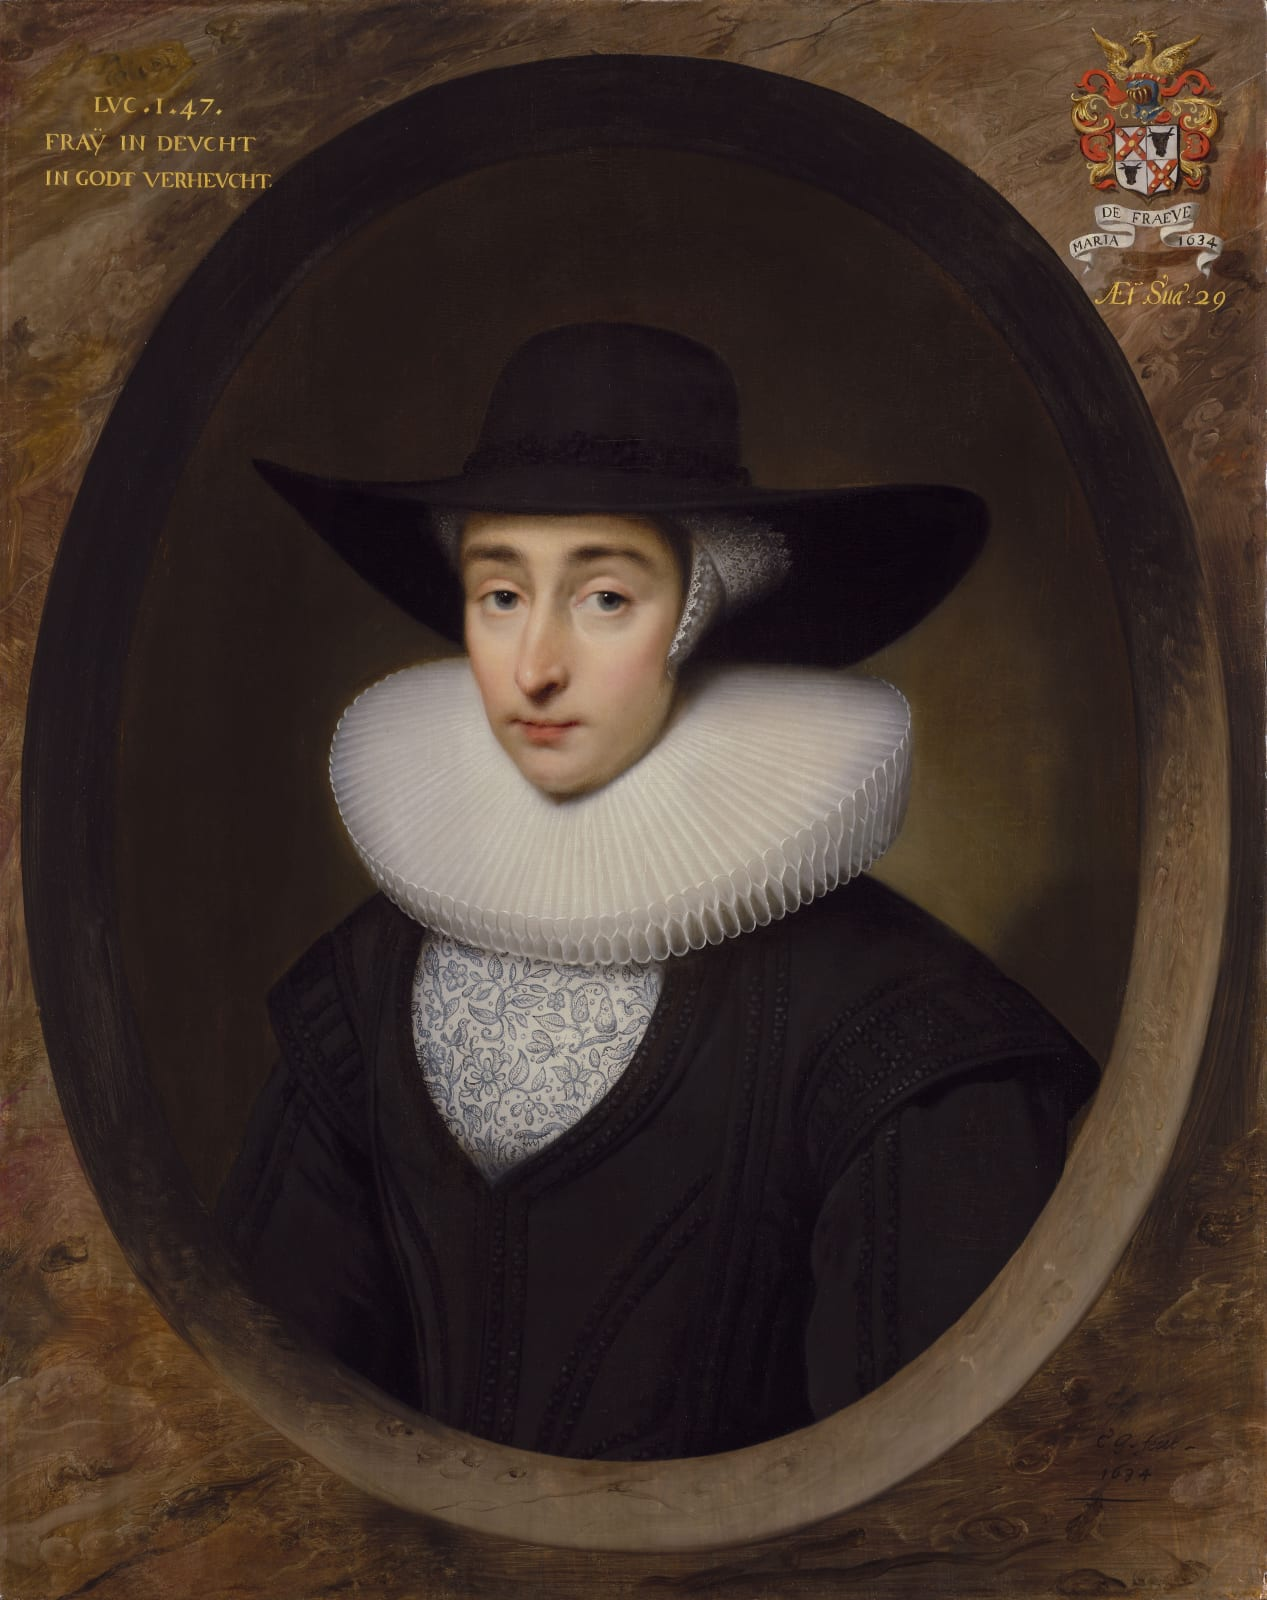 An Unknown Lady, presumably from the Dutch Reformist Community in London